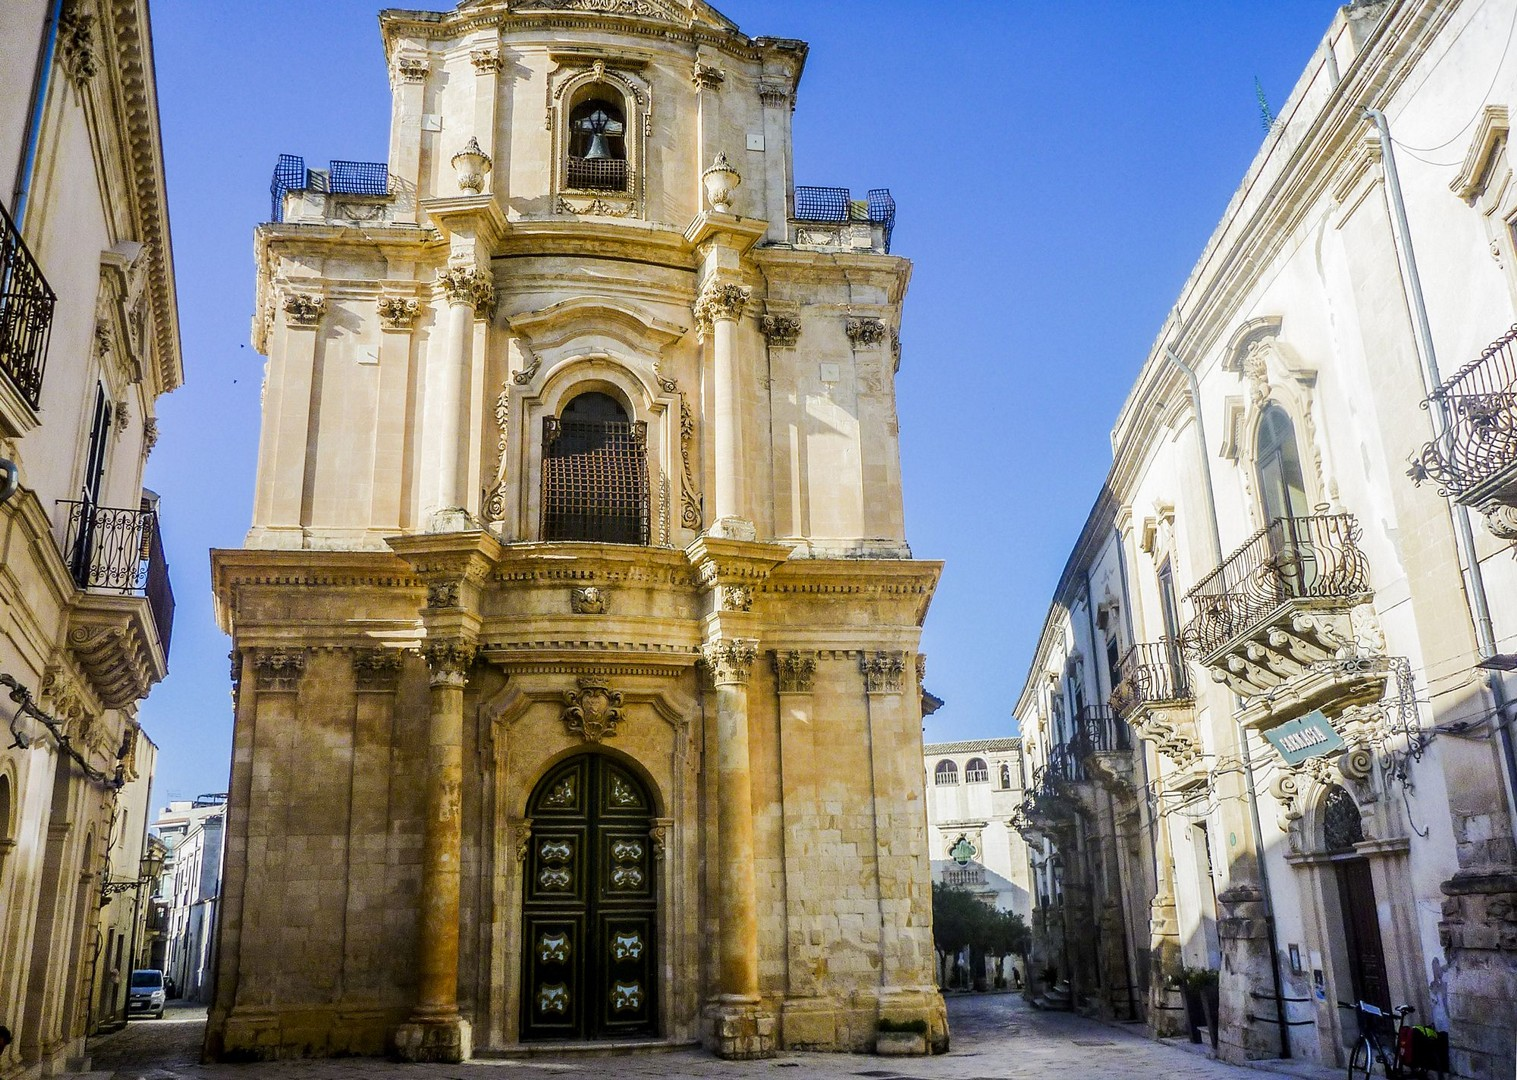 traditional-baroque-towns-modica-ragusa-noto-sicily-cycling.jpg - Italy - Sicily - Self-Guided Leisure Cycling Holiday - Italia Leisure and Family Cycling